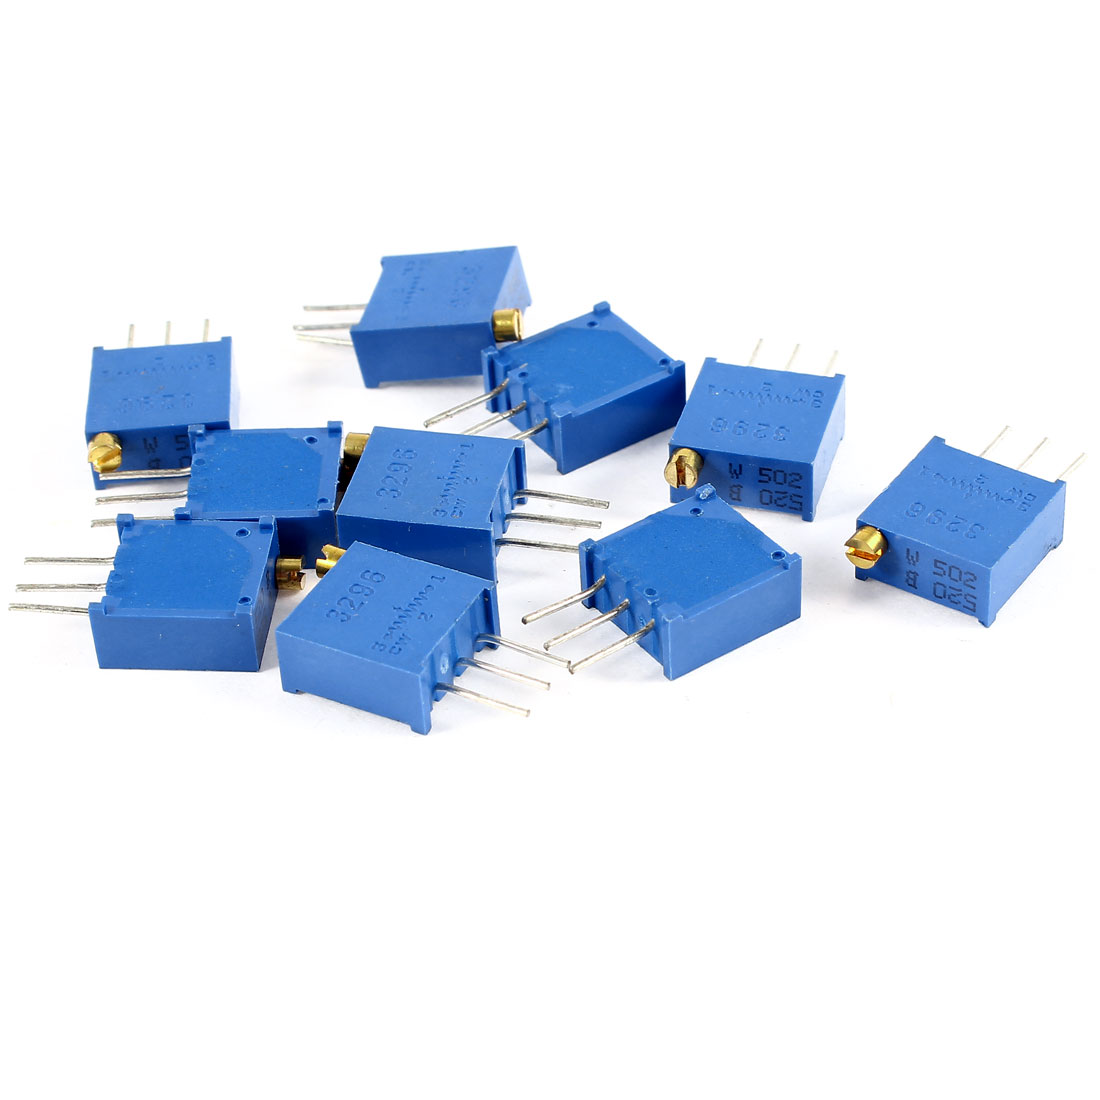 10Pcs 3296W-502 5K ohm 3 Pins High Precision Adjustable Resistor Trim Pot Potentiometer Trimmer